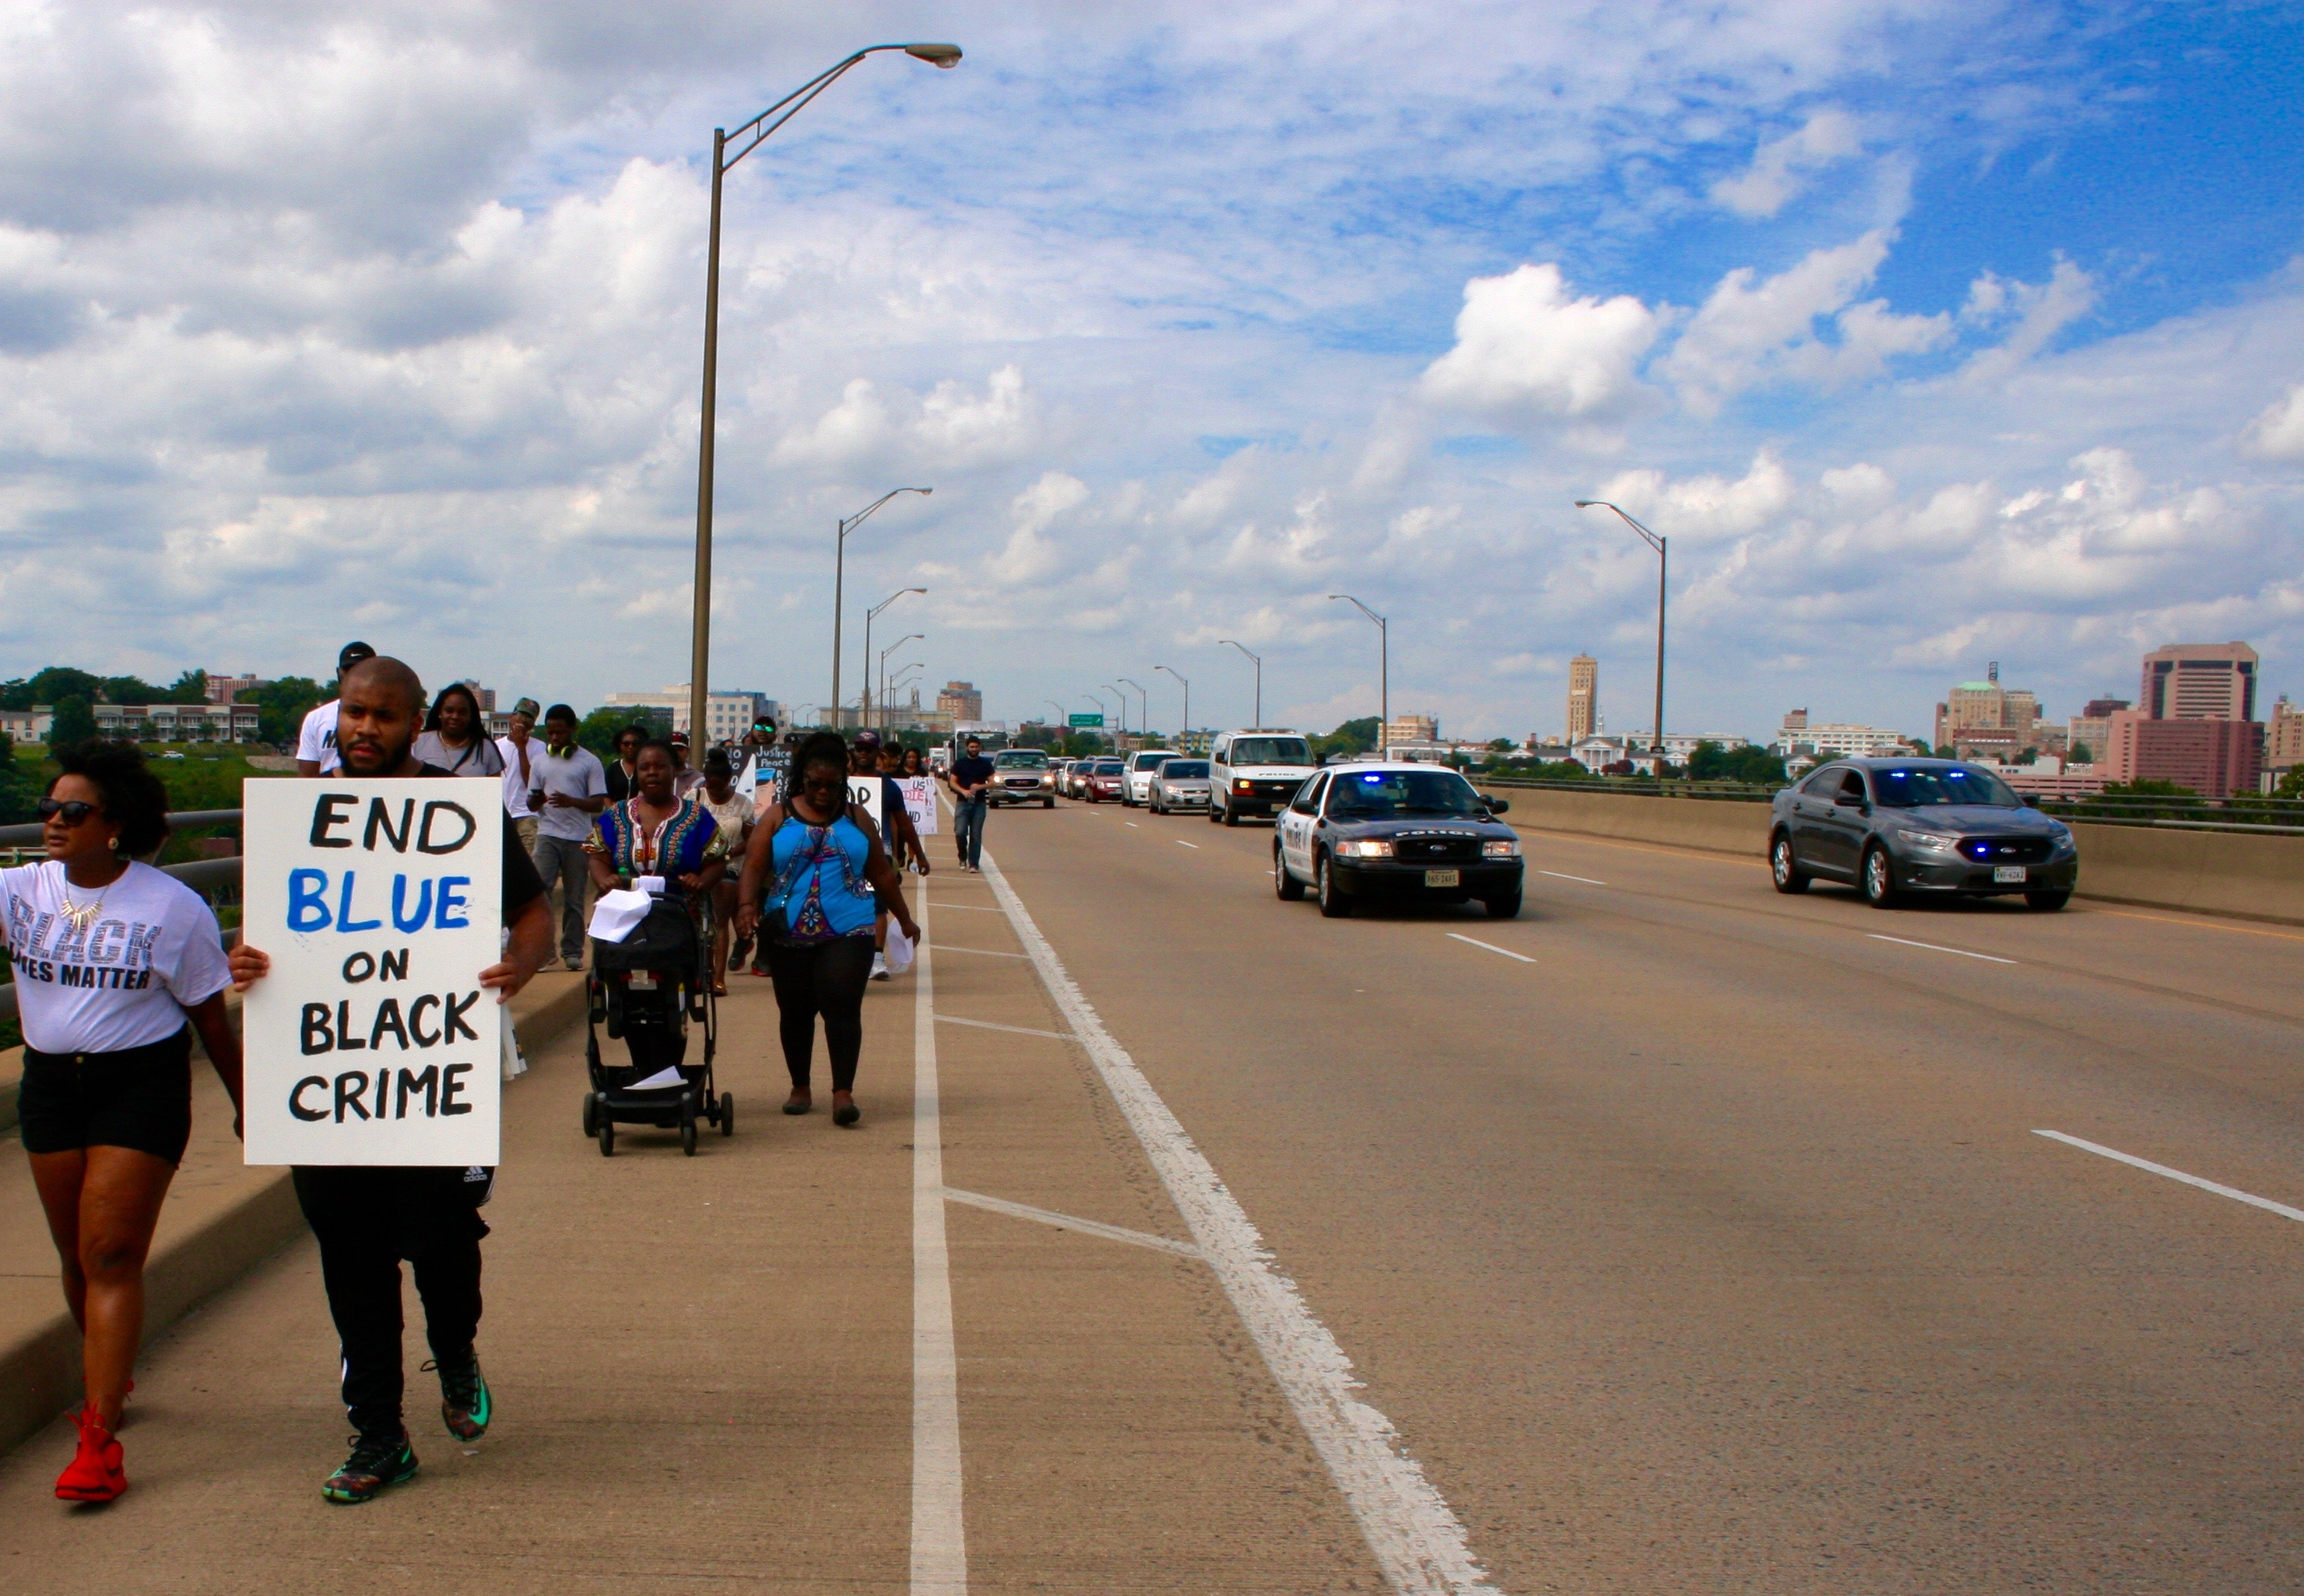 RVA 1k March, photo by Sarah King, the Commonwealth Times